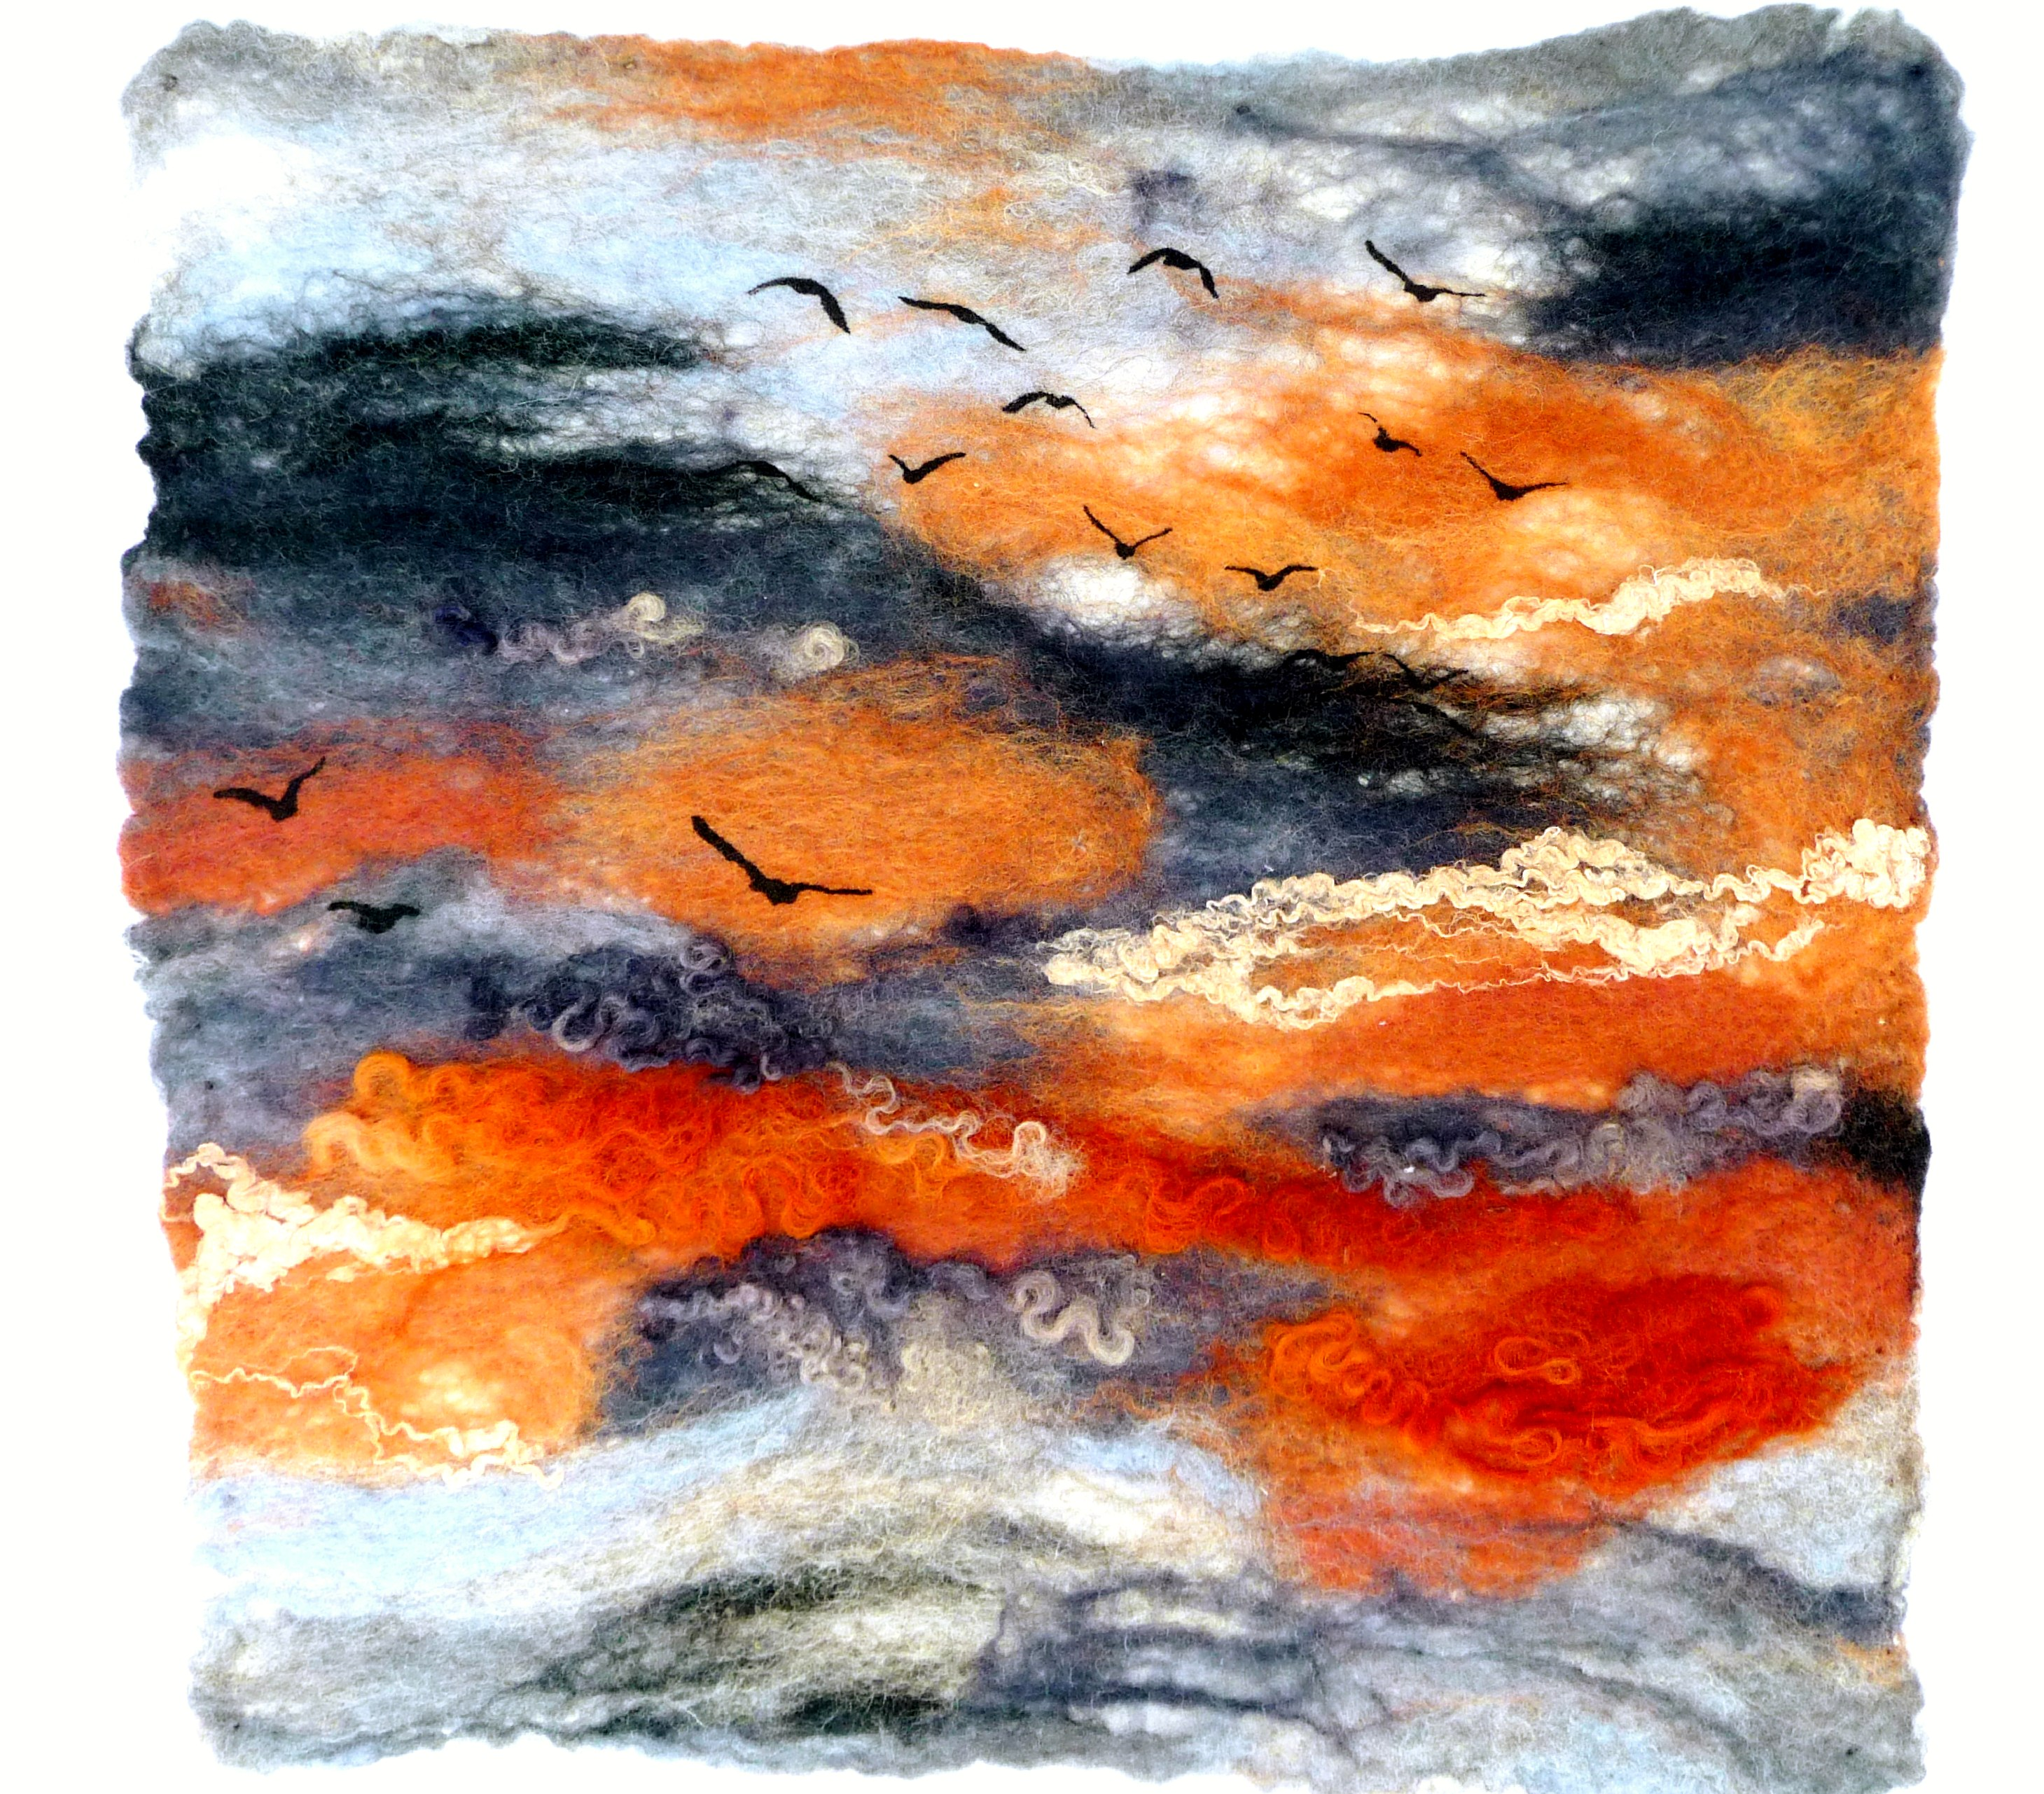 SUNSET FLIGHT 2 by Rosey  Paul, hand-felted textile